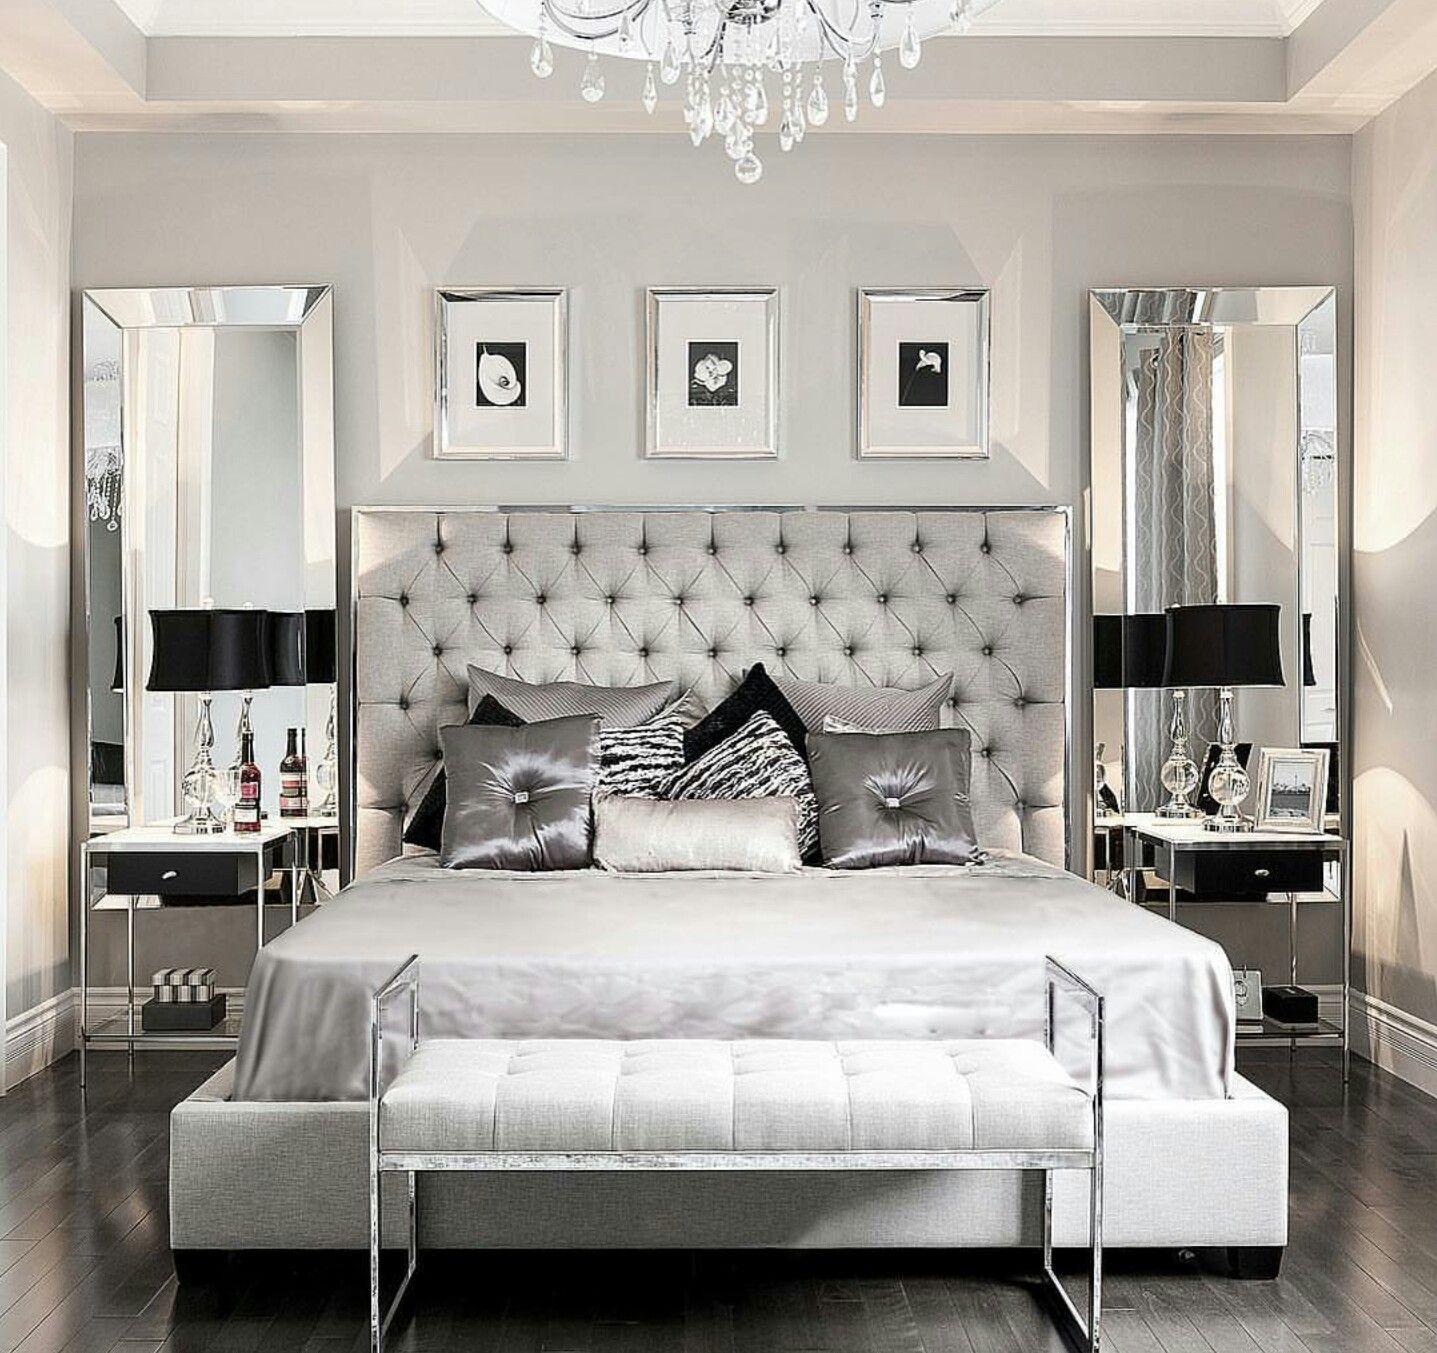 Upscale Luxury Master Bedroom  Glamorous bedroom decor, Master